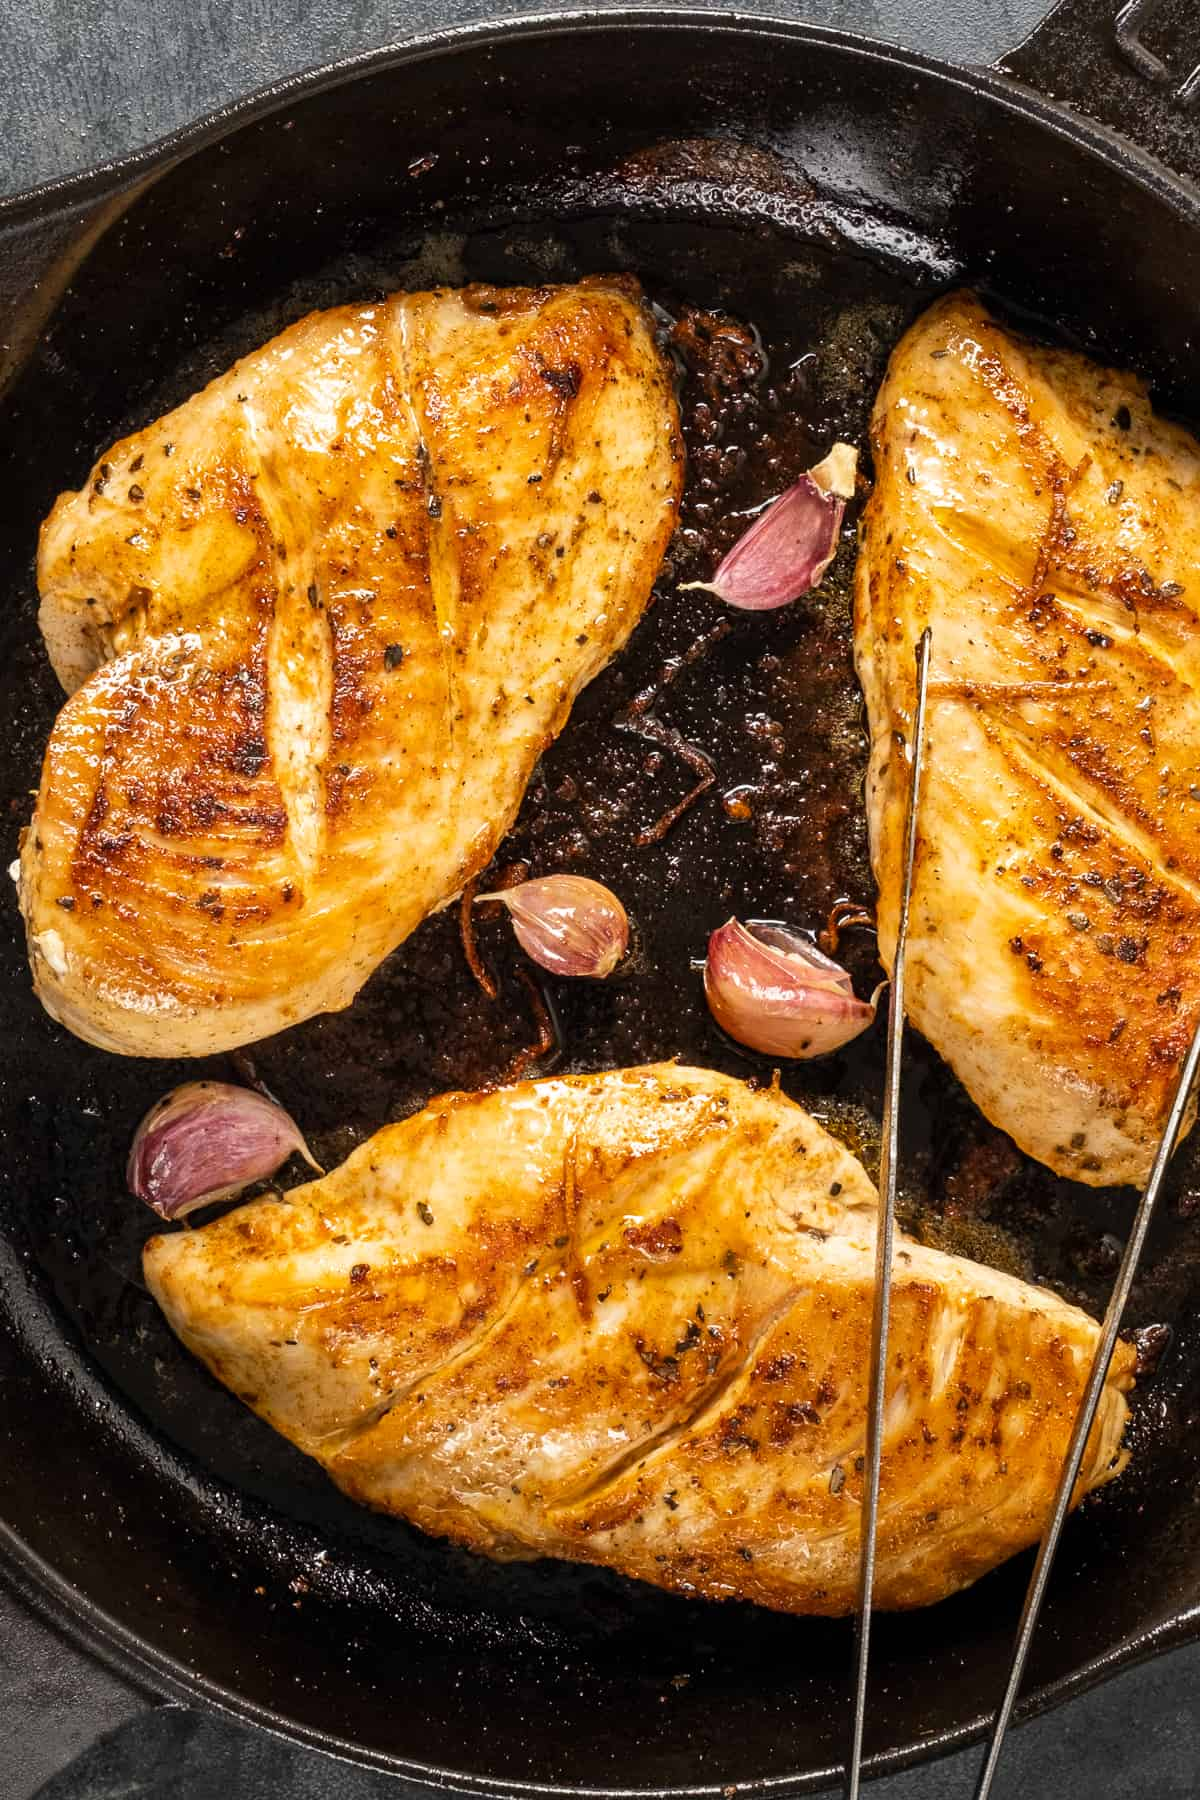 Golden cooked chicken breasts and garlic cloves with their skin in a cast iron pan.